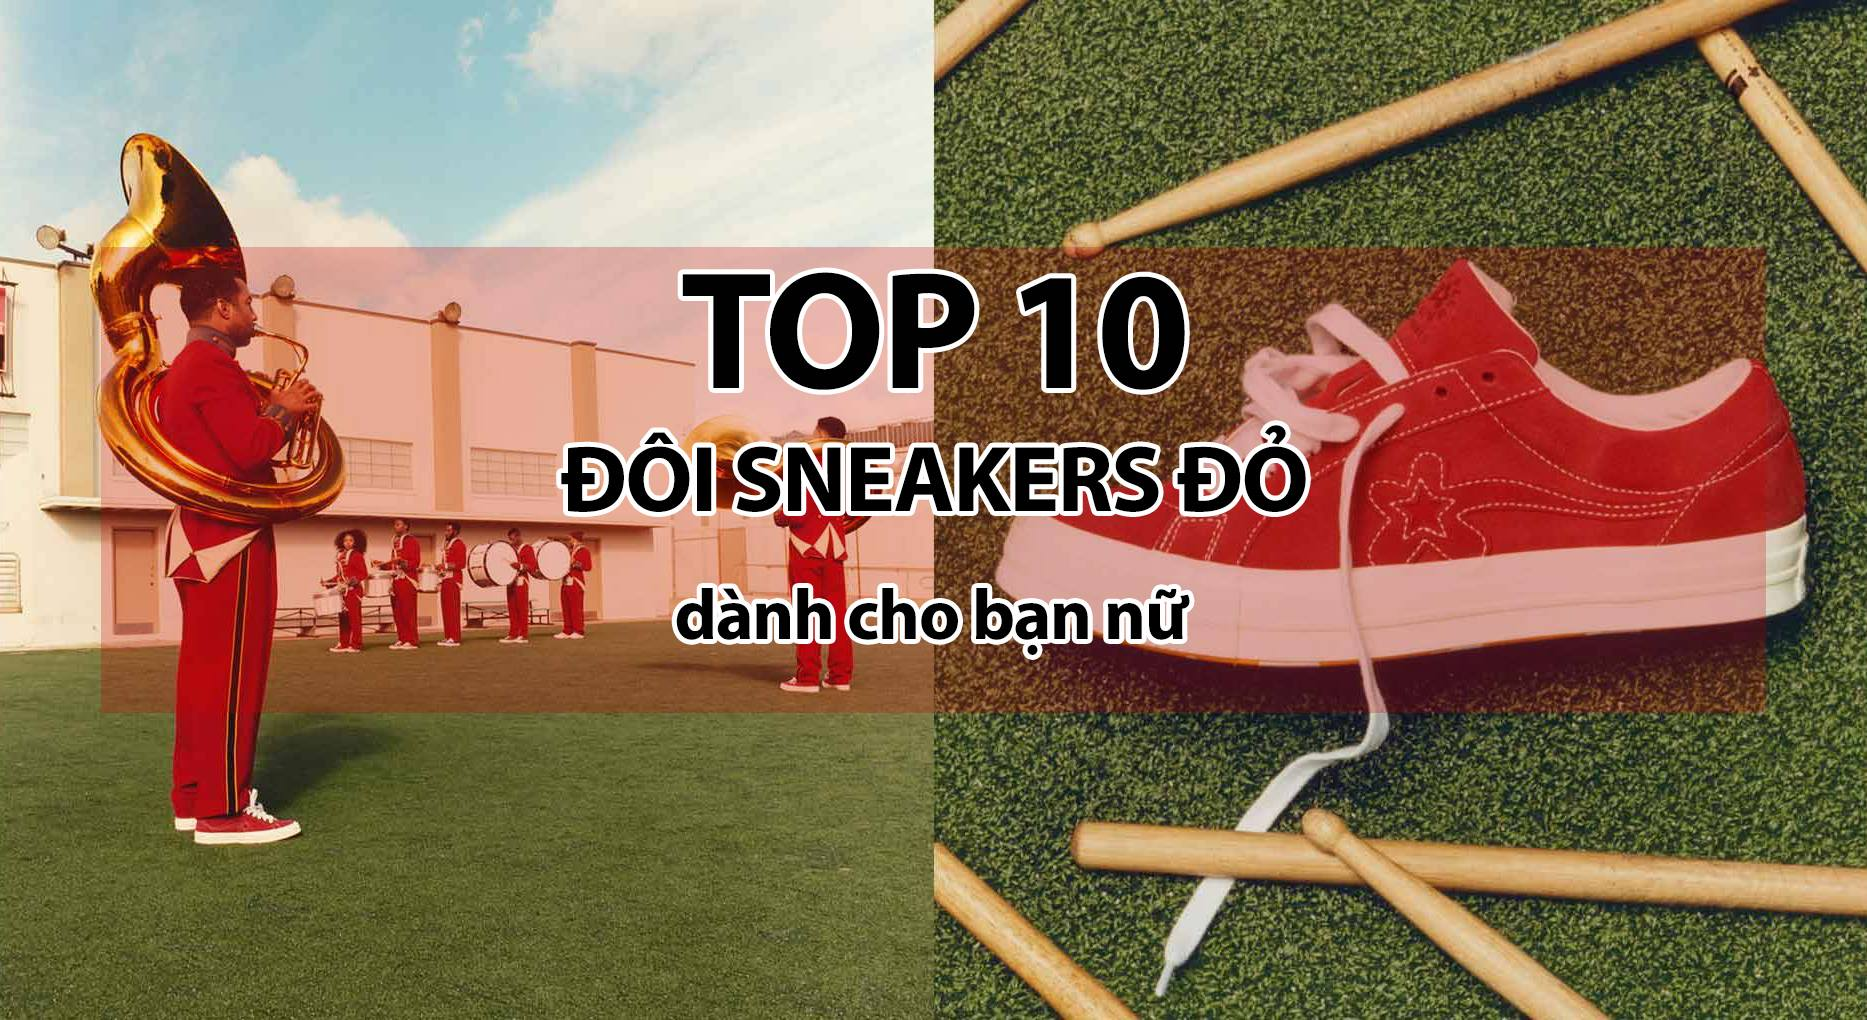 Top 10 hottest red sneakers for women in the last 3 months